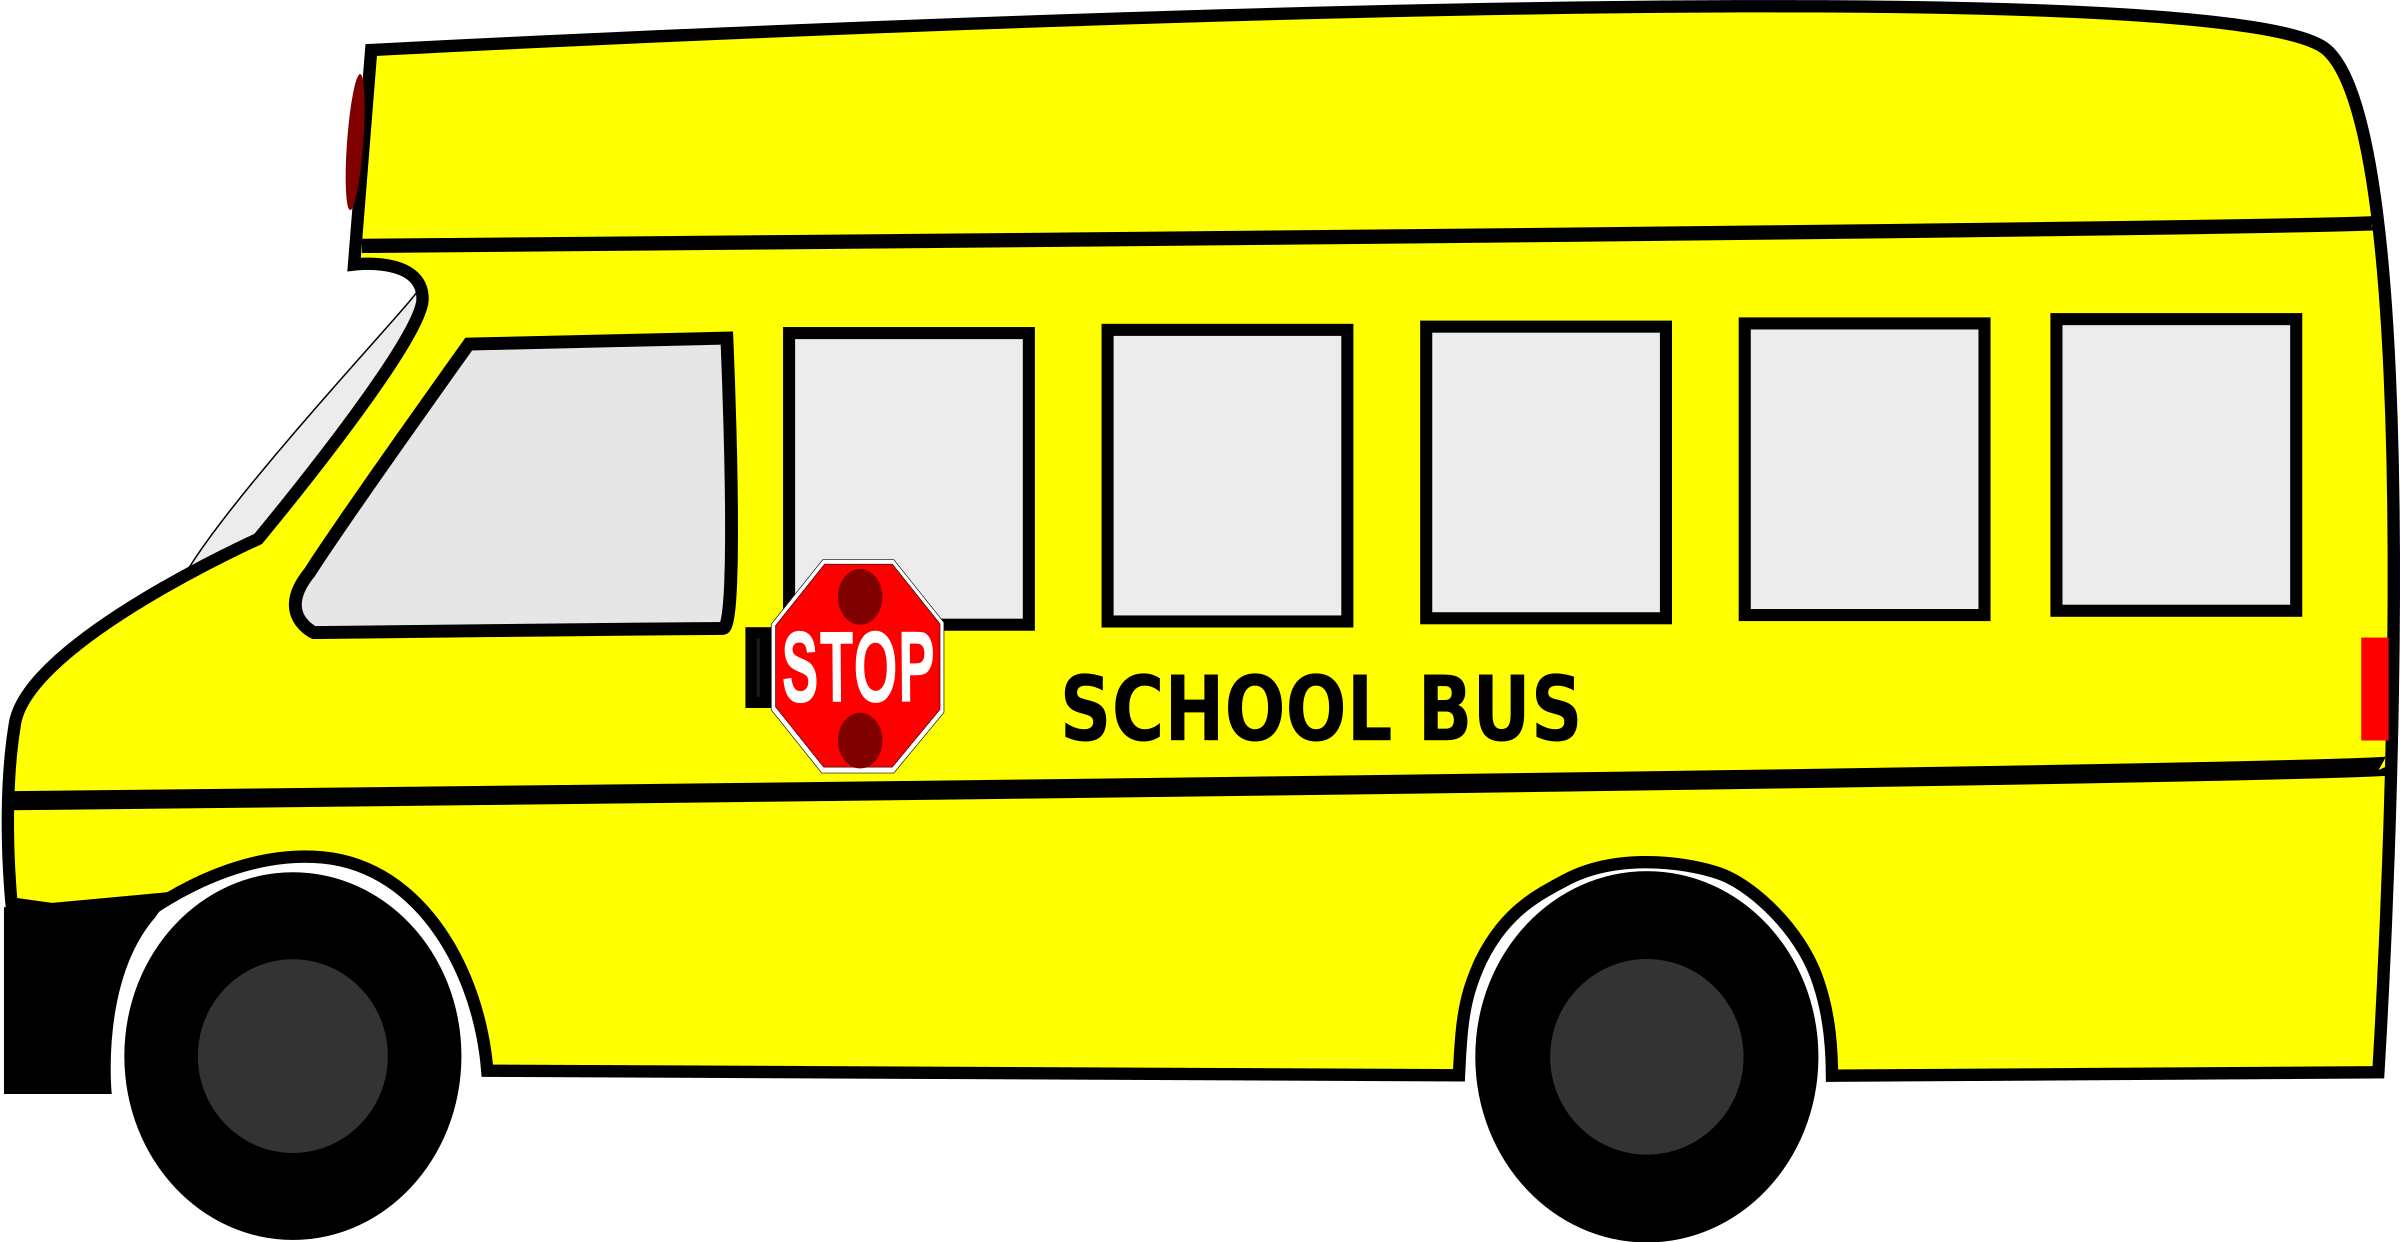 svg transparent download Icons free and downloads. School bus clipart png.